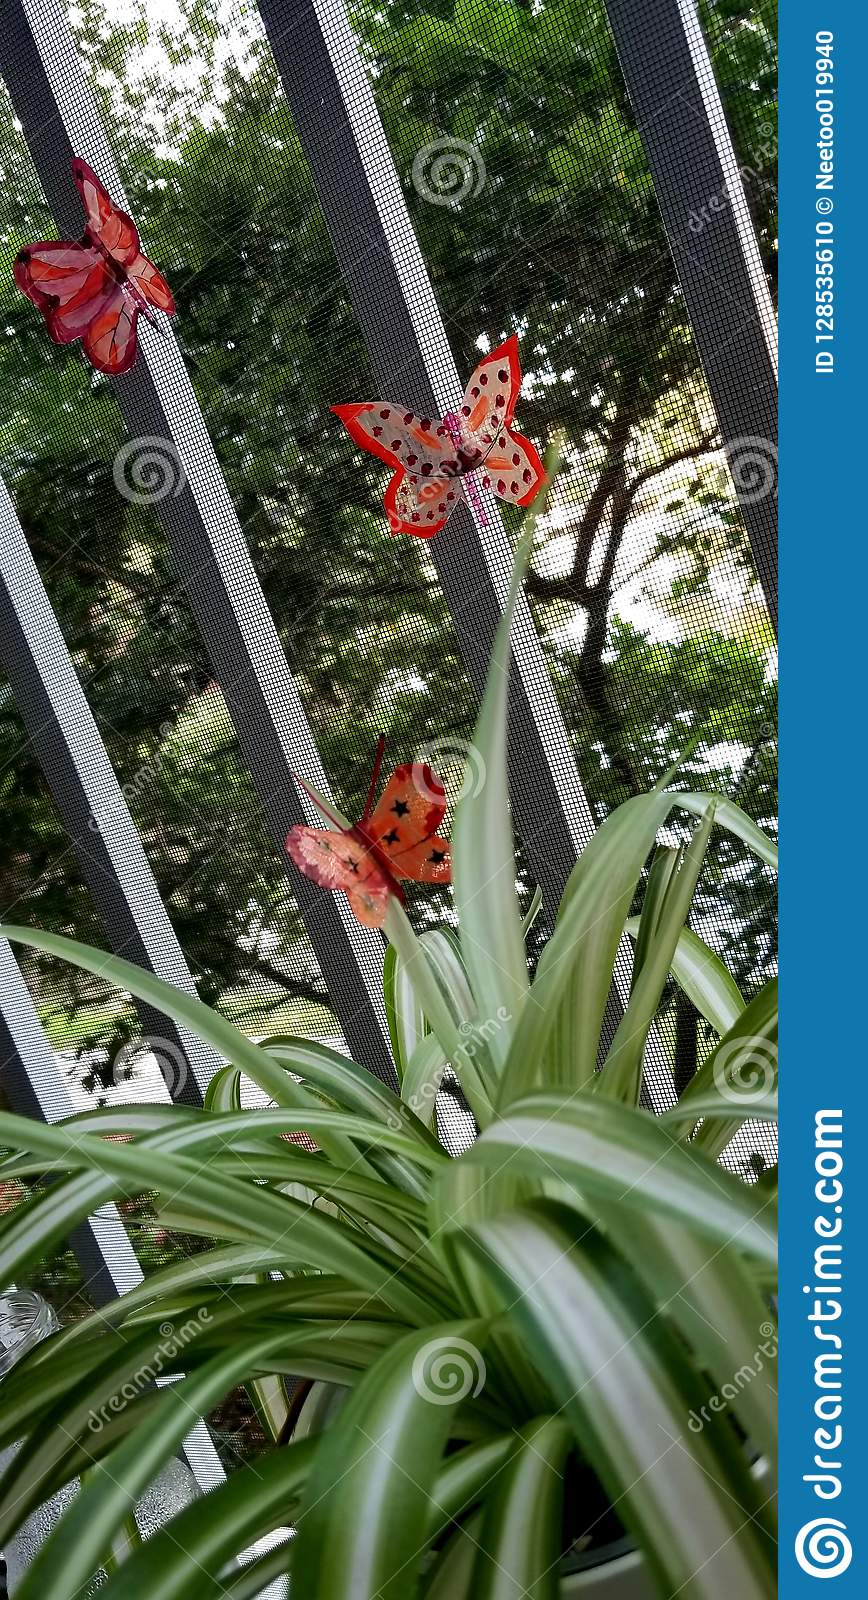 Garden decor by butterfly stock photo. Image of idea - 8